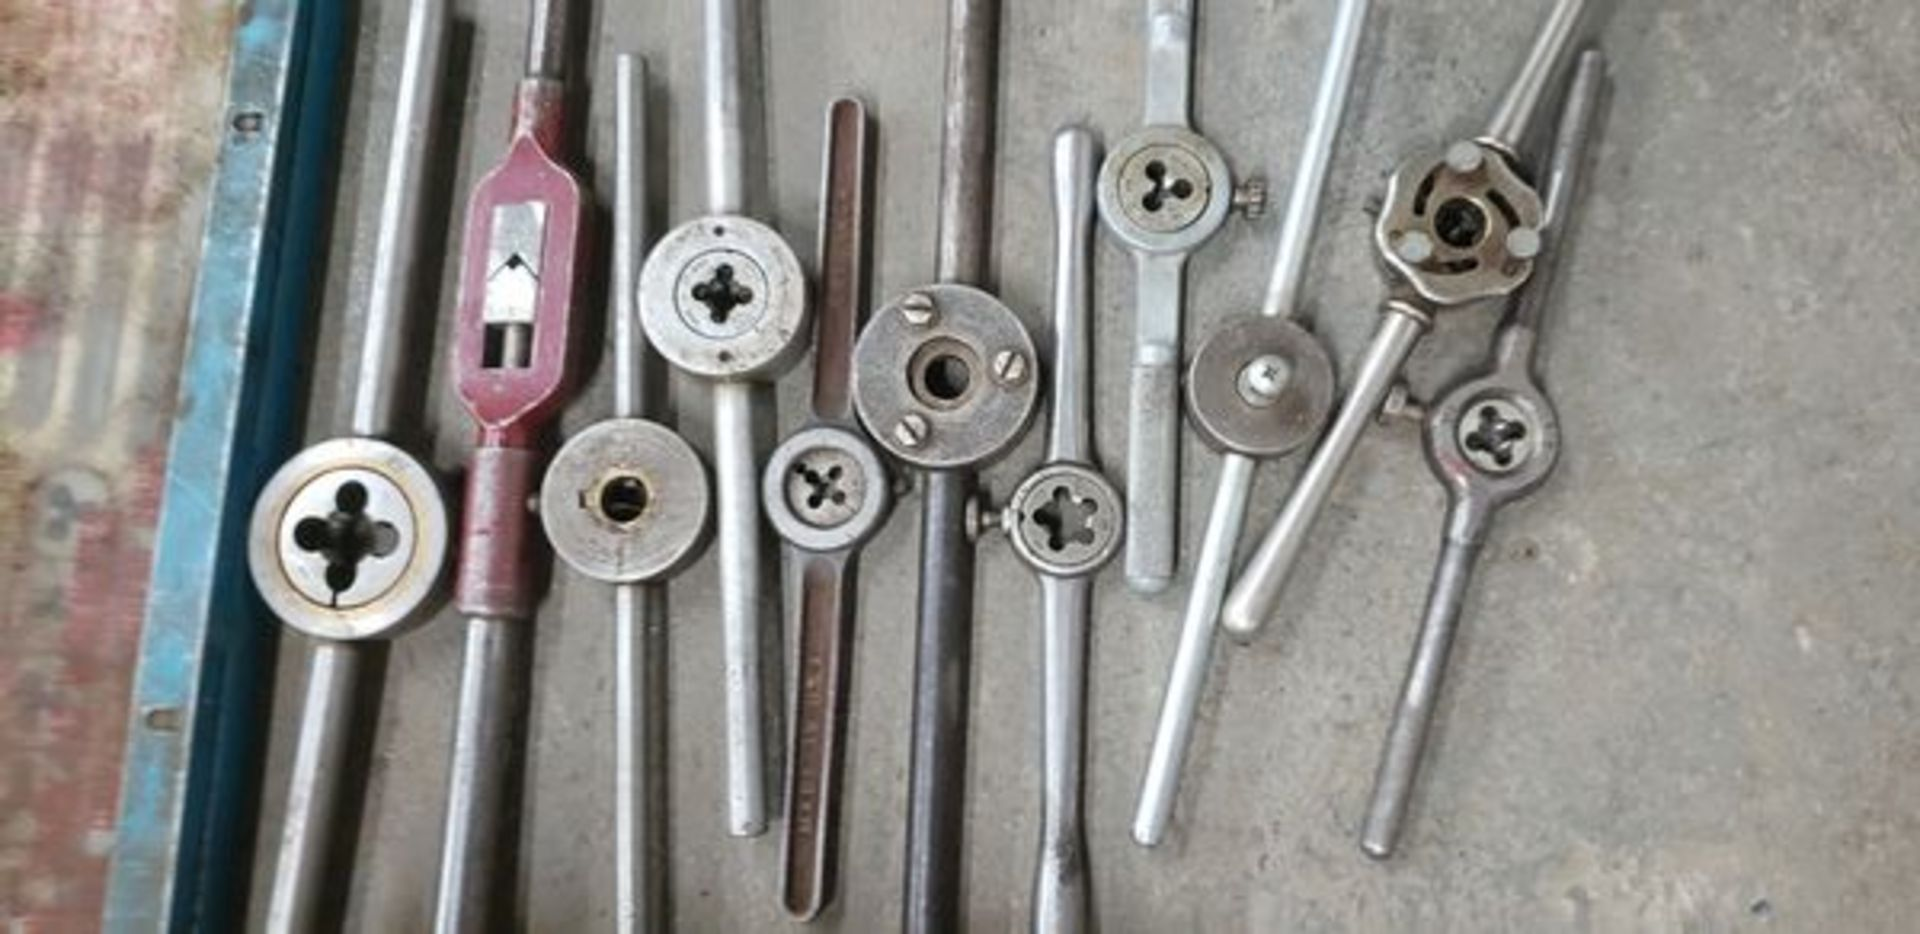 LOT OF TAPS, DIE AND TOOLS - Image 4 of 5